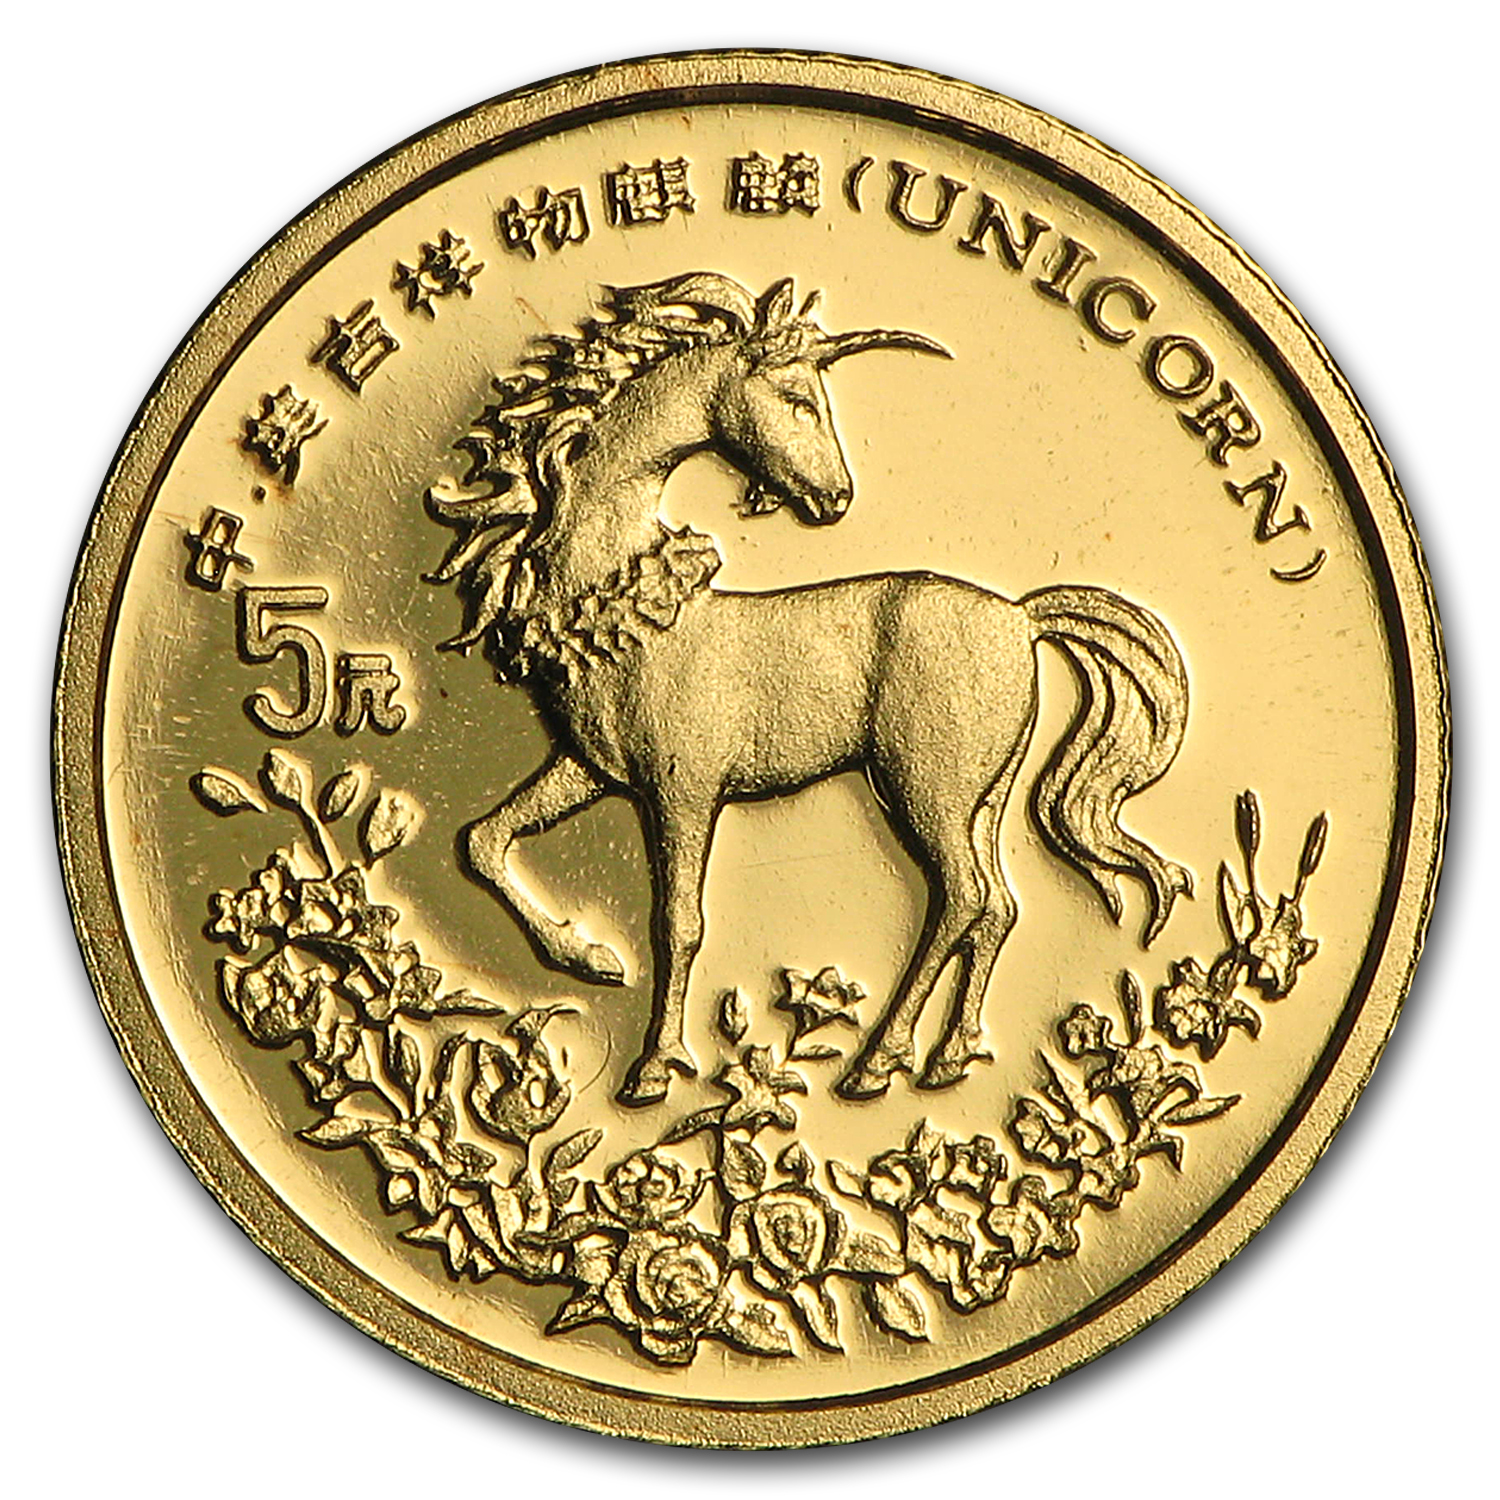 1994 China Gold 5 Yuan Unicorn (Capsule)